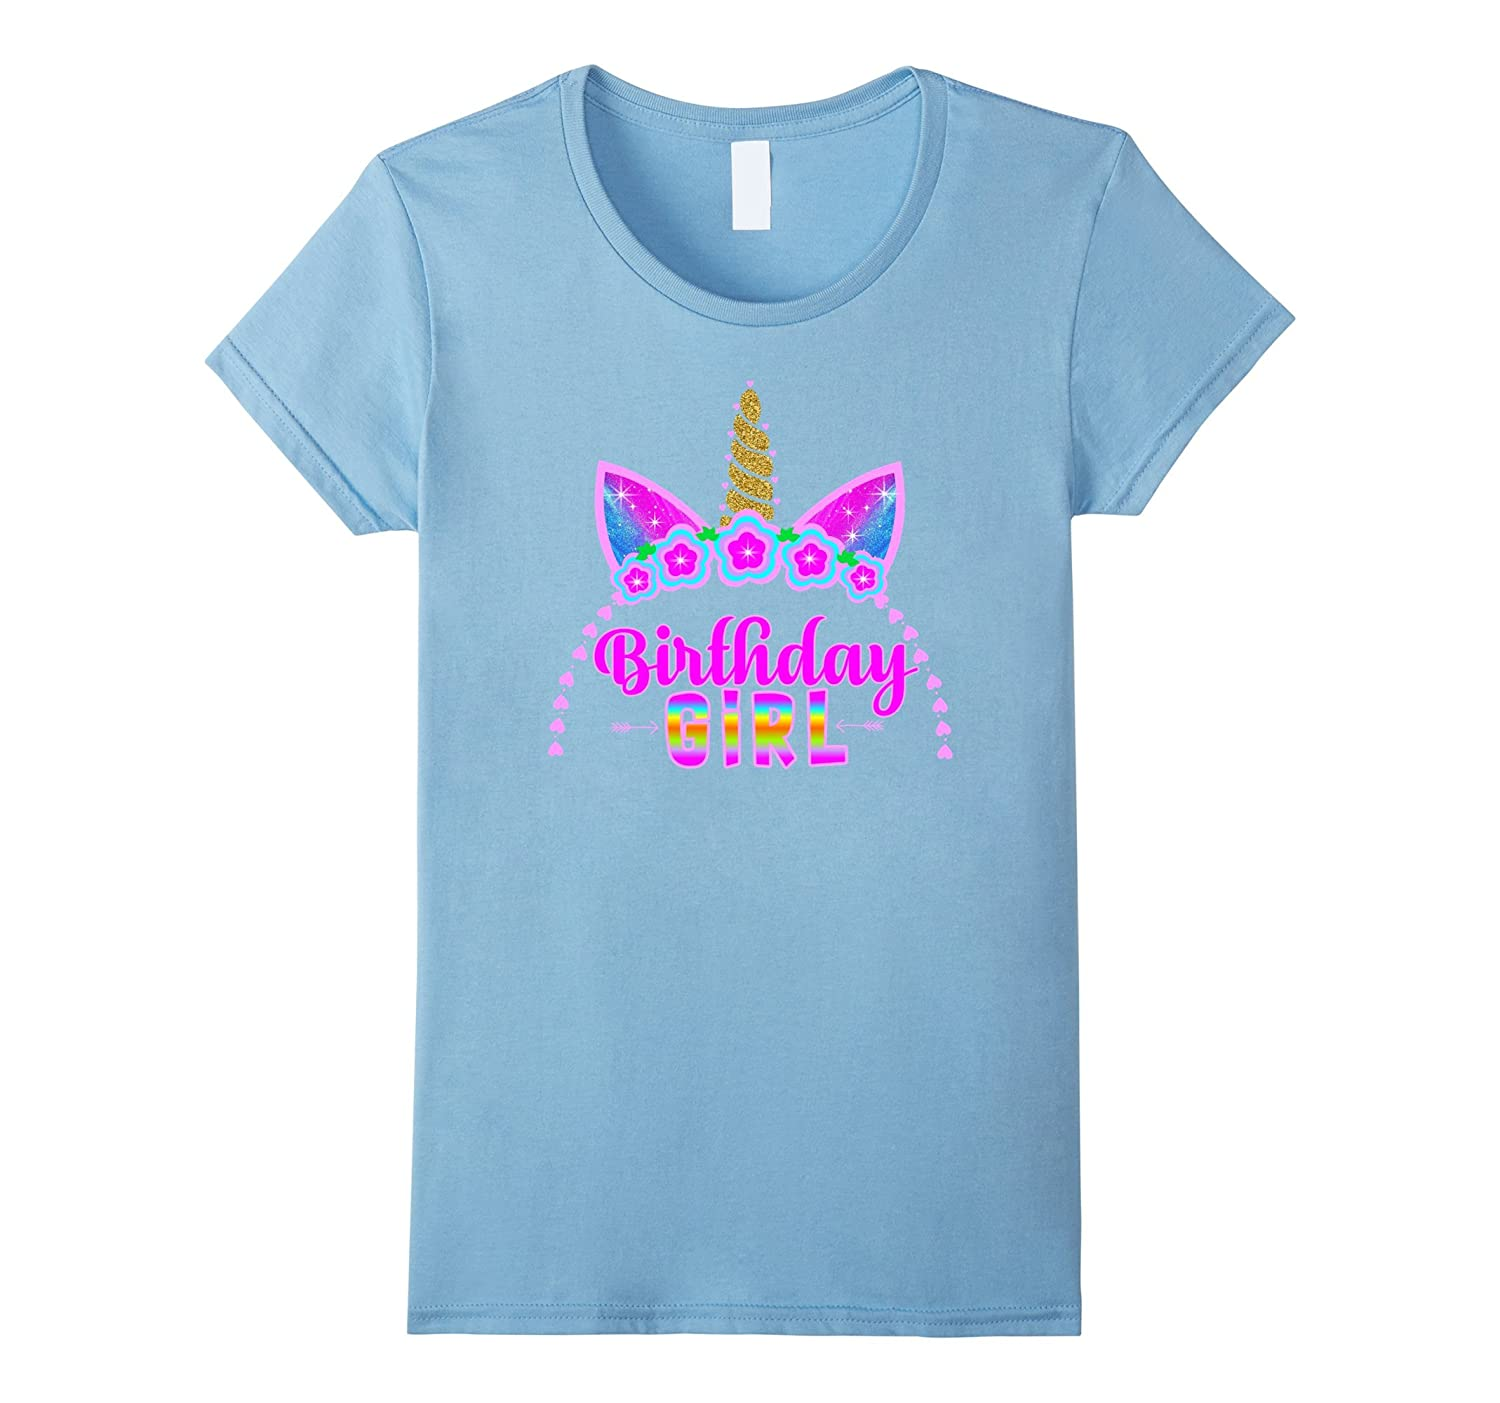 Amazon Unicorn Its My Birthday Headband Hair Graphic T Shirt Kids Clothing